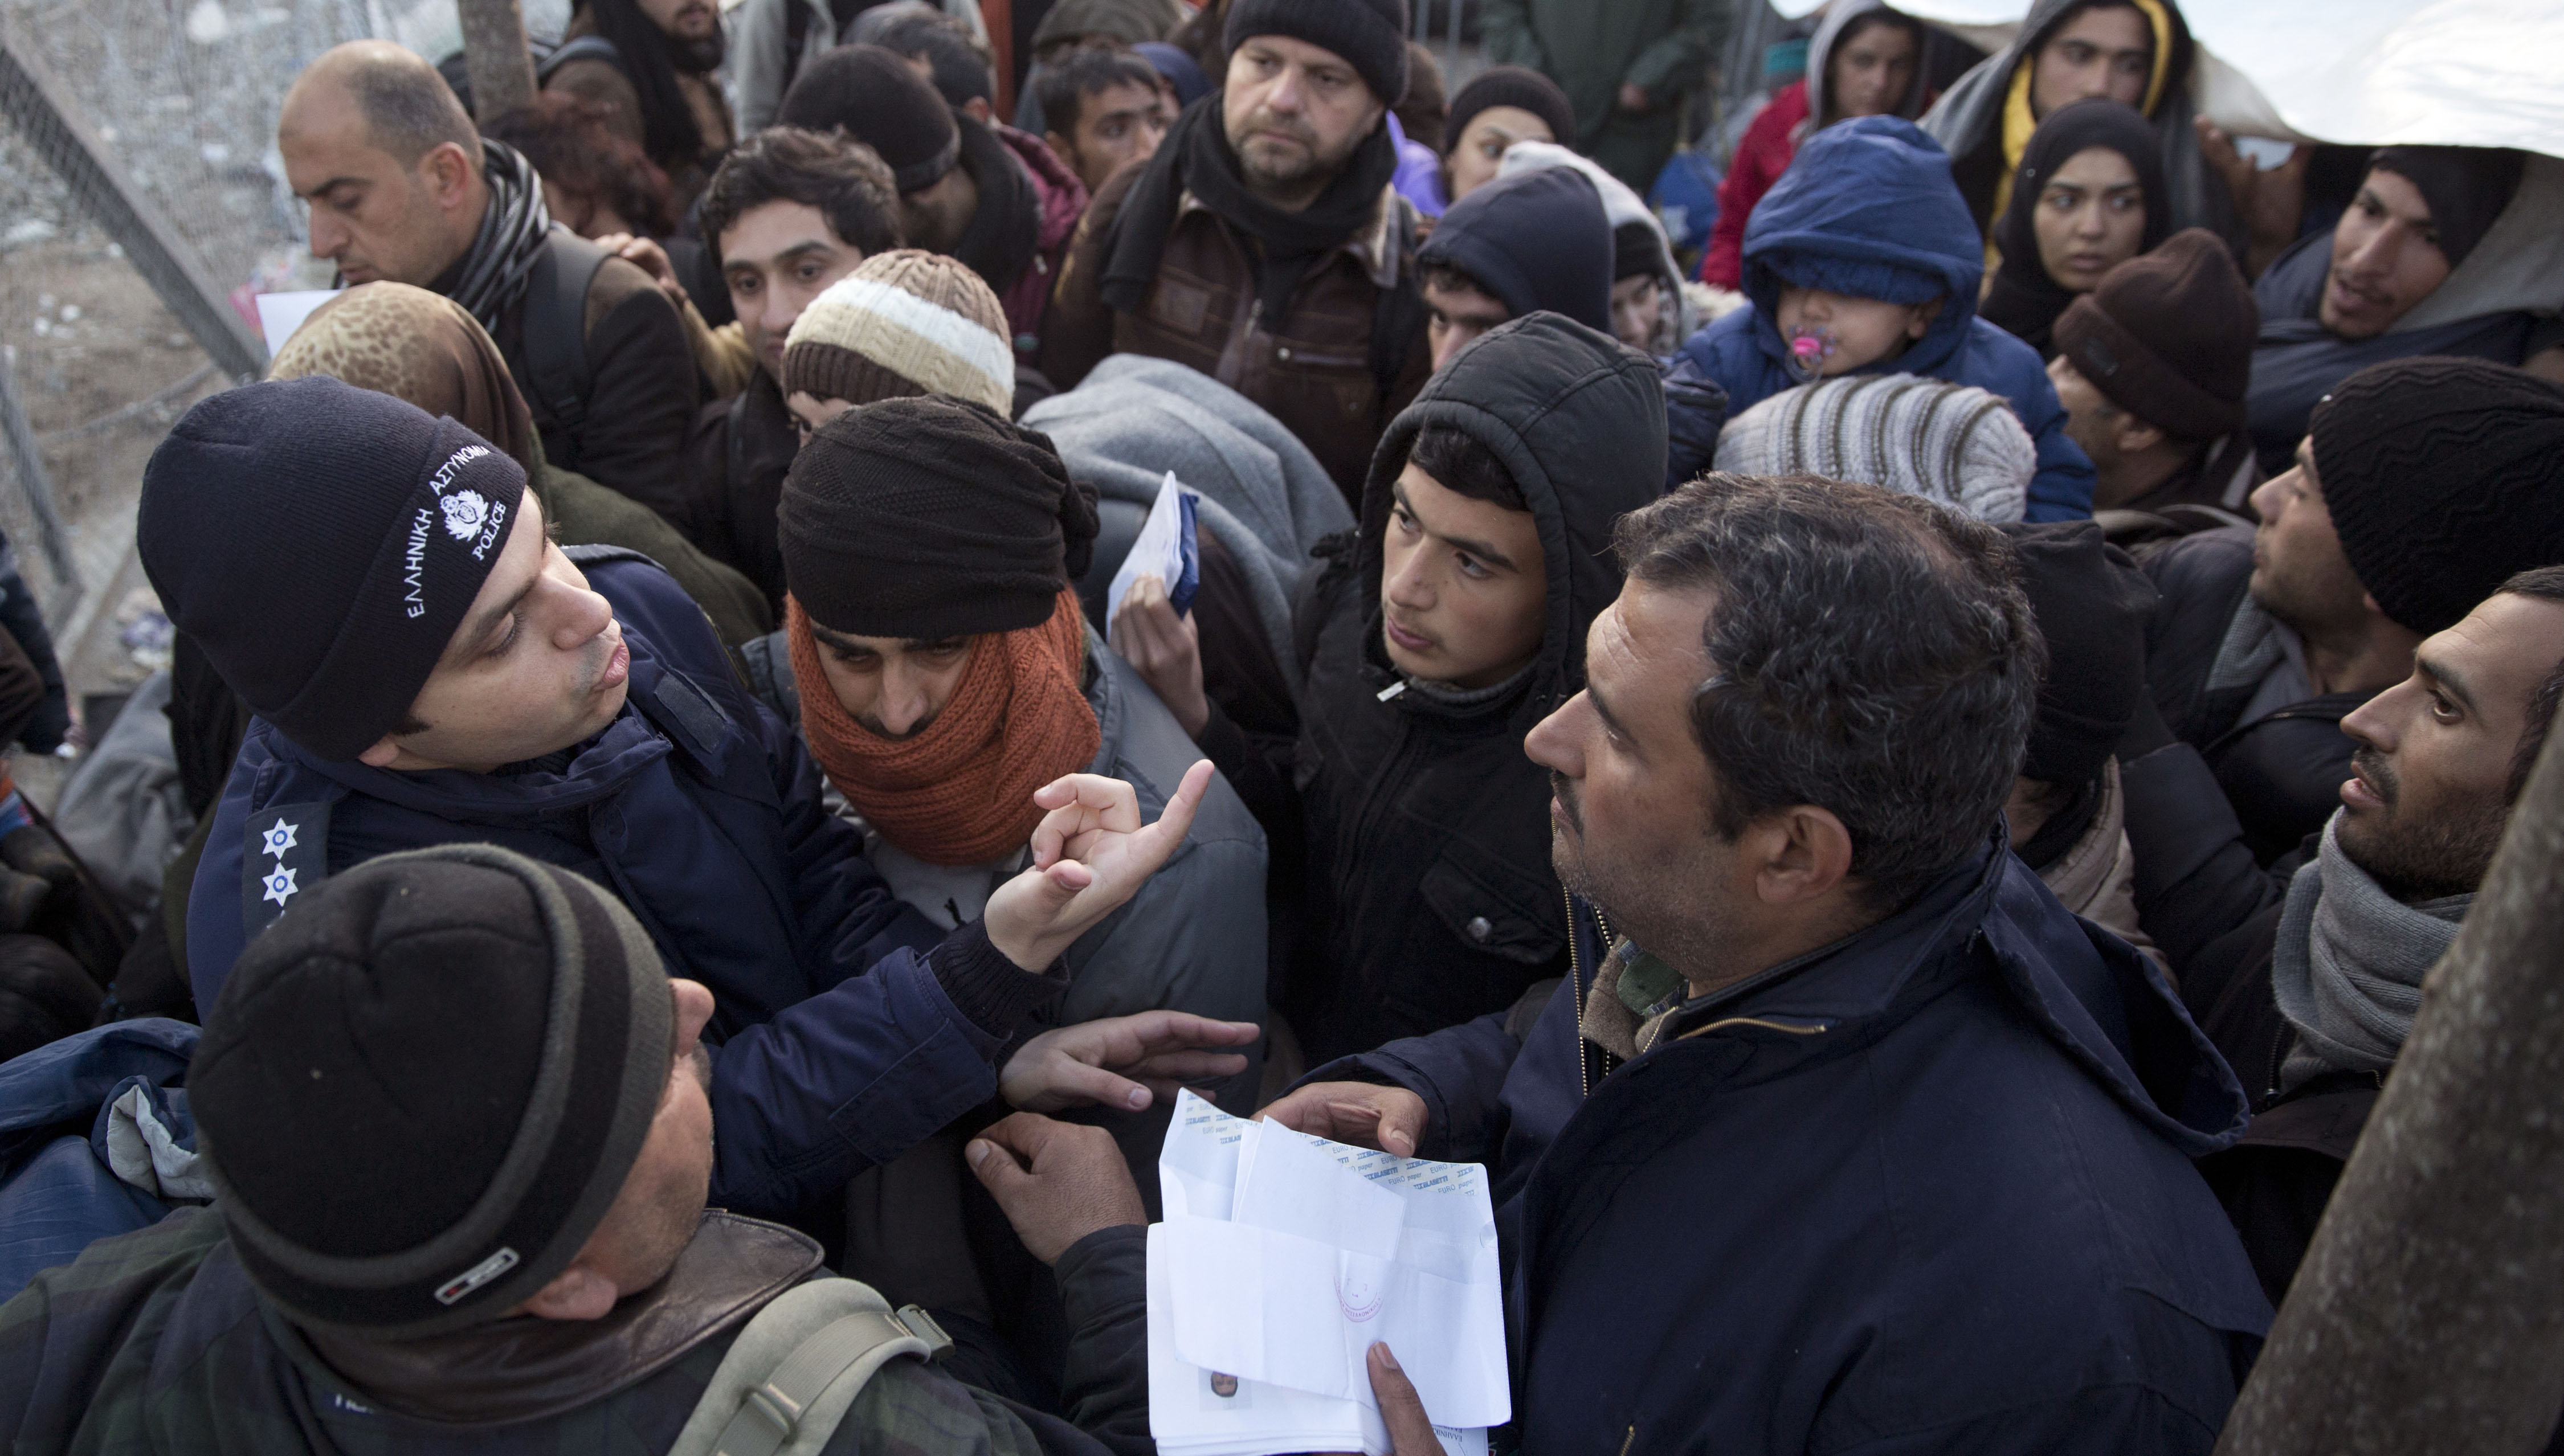 Europe's Islamophobia and the Refugee Crisis